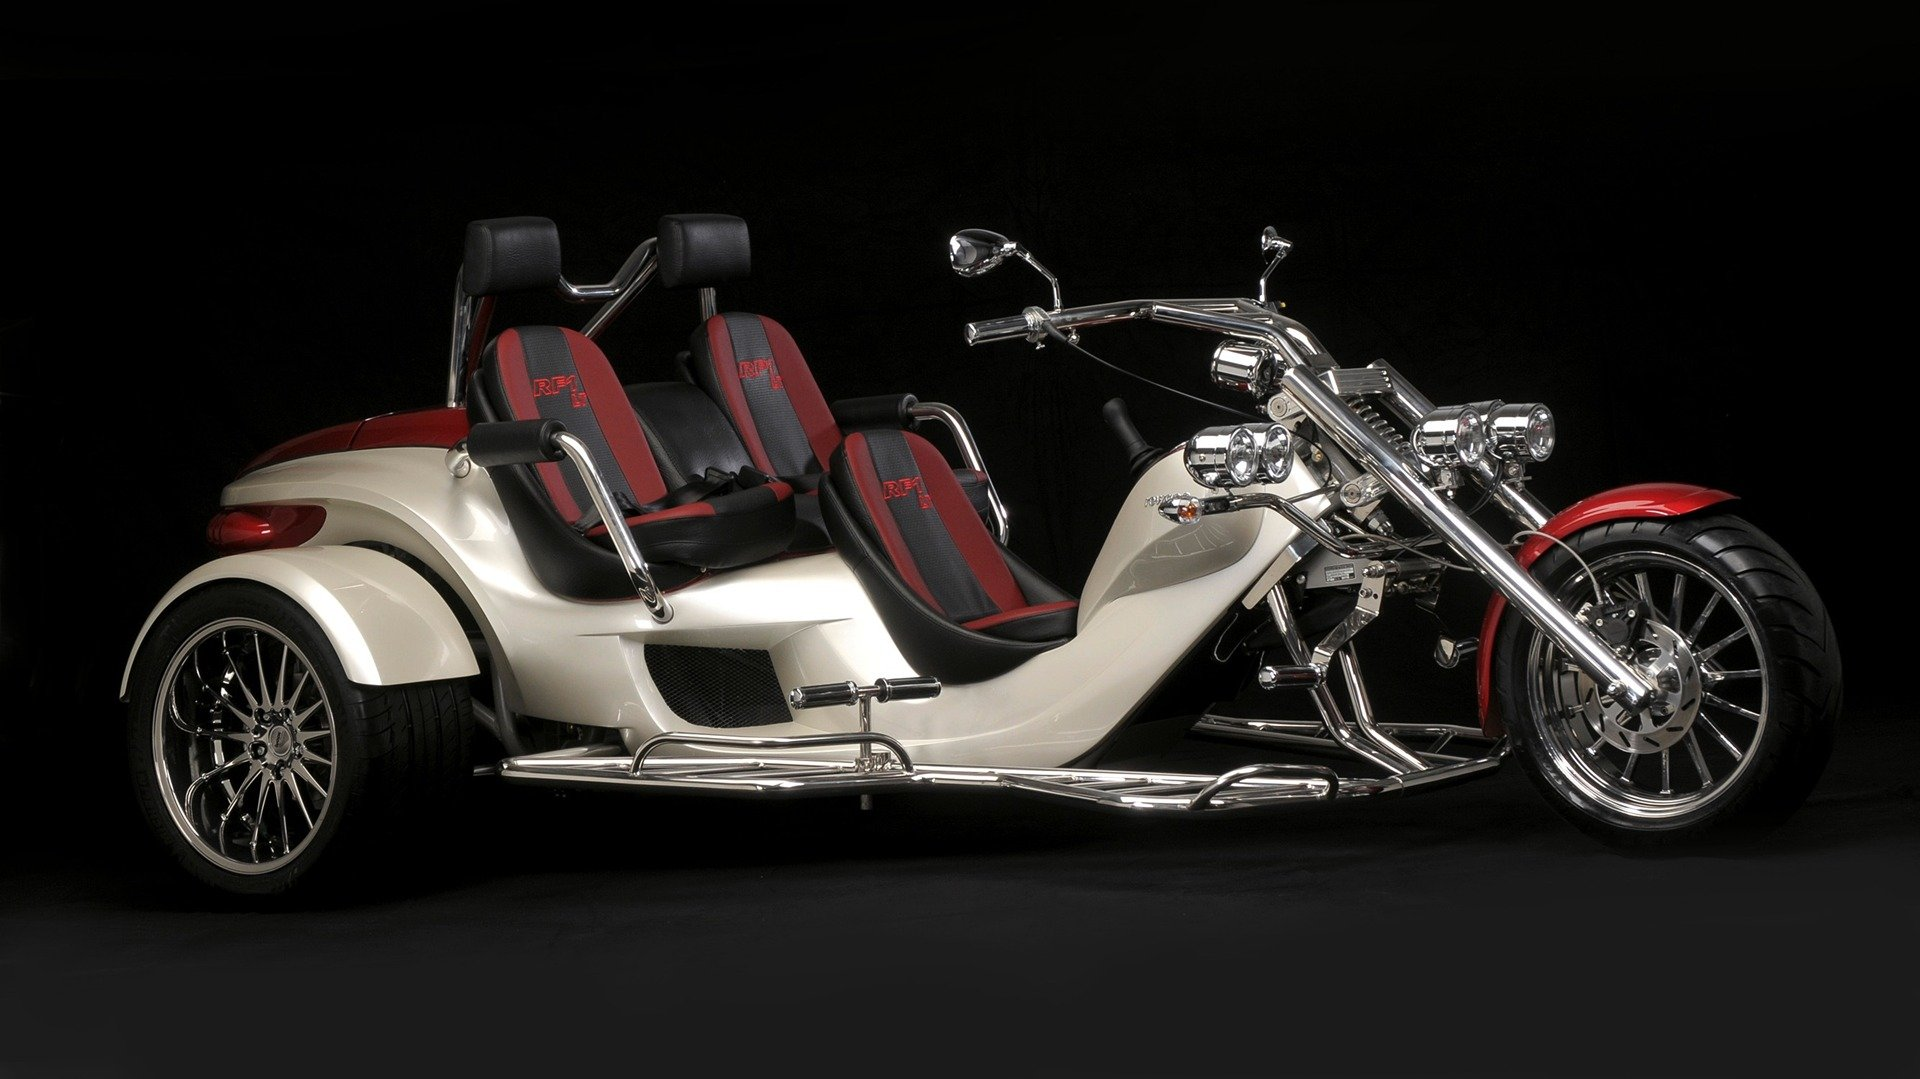 trike rewaco motorcycle automatic transmission offered